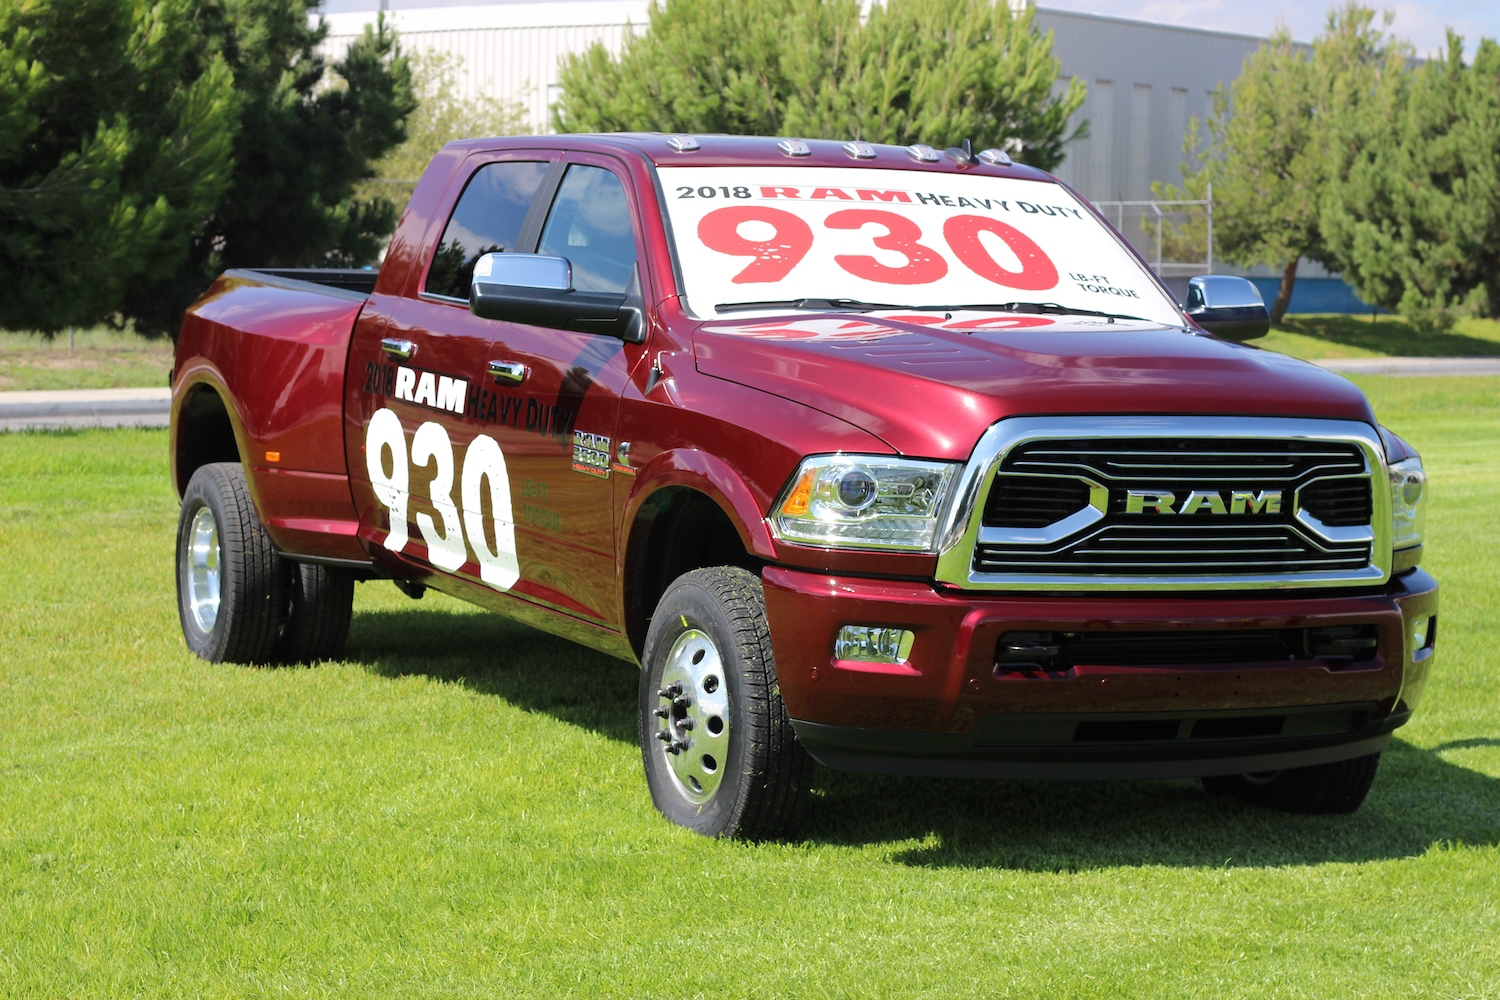 Ram 3500 steals torque crown from Ford, claims best-in-class